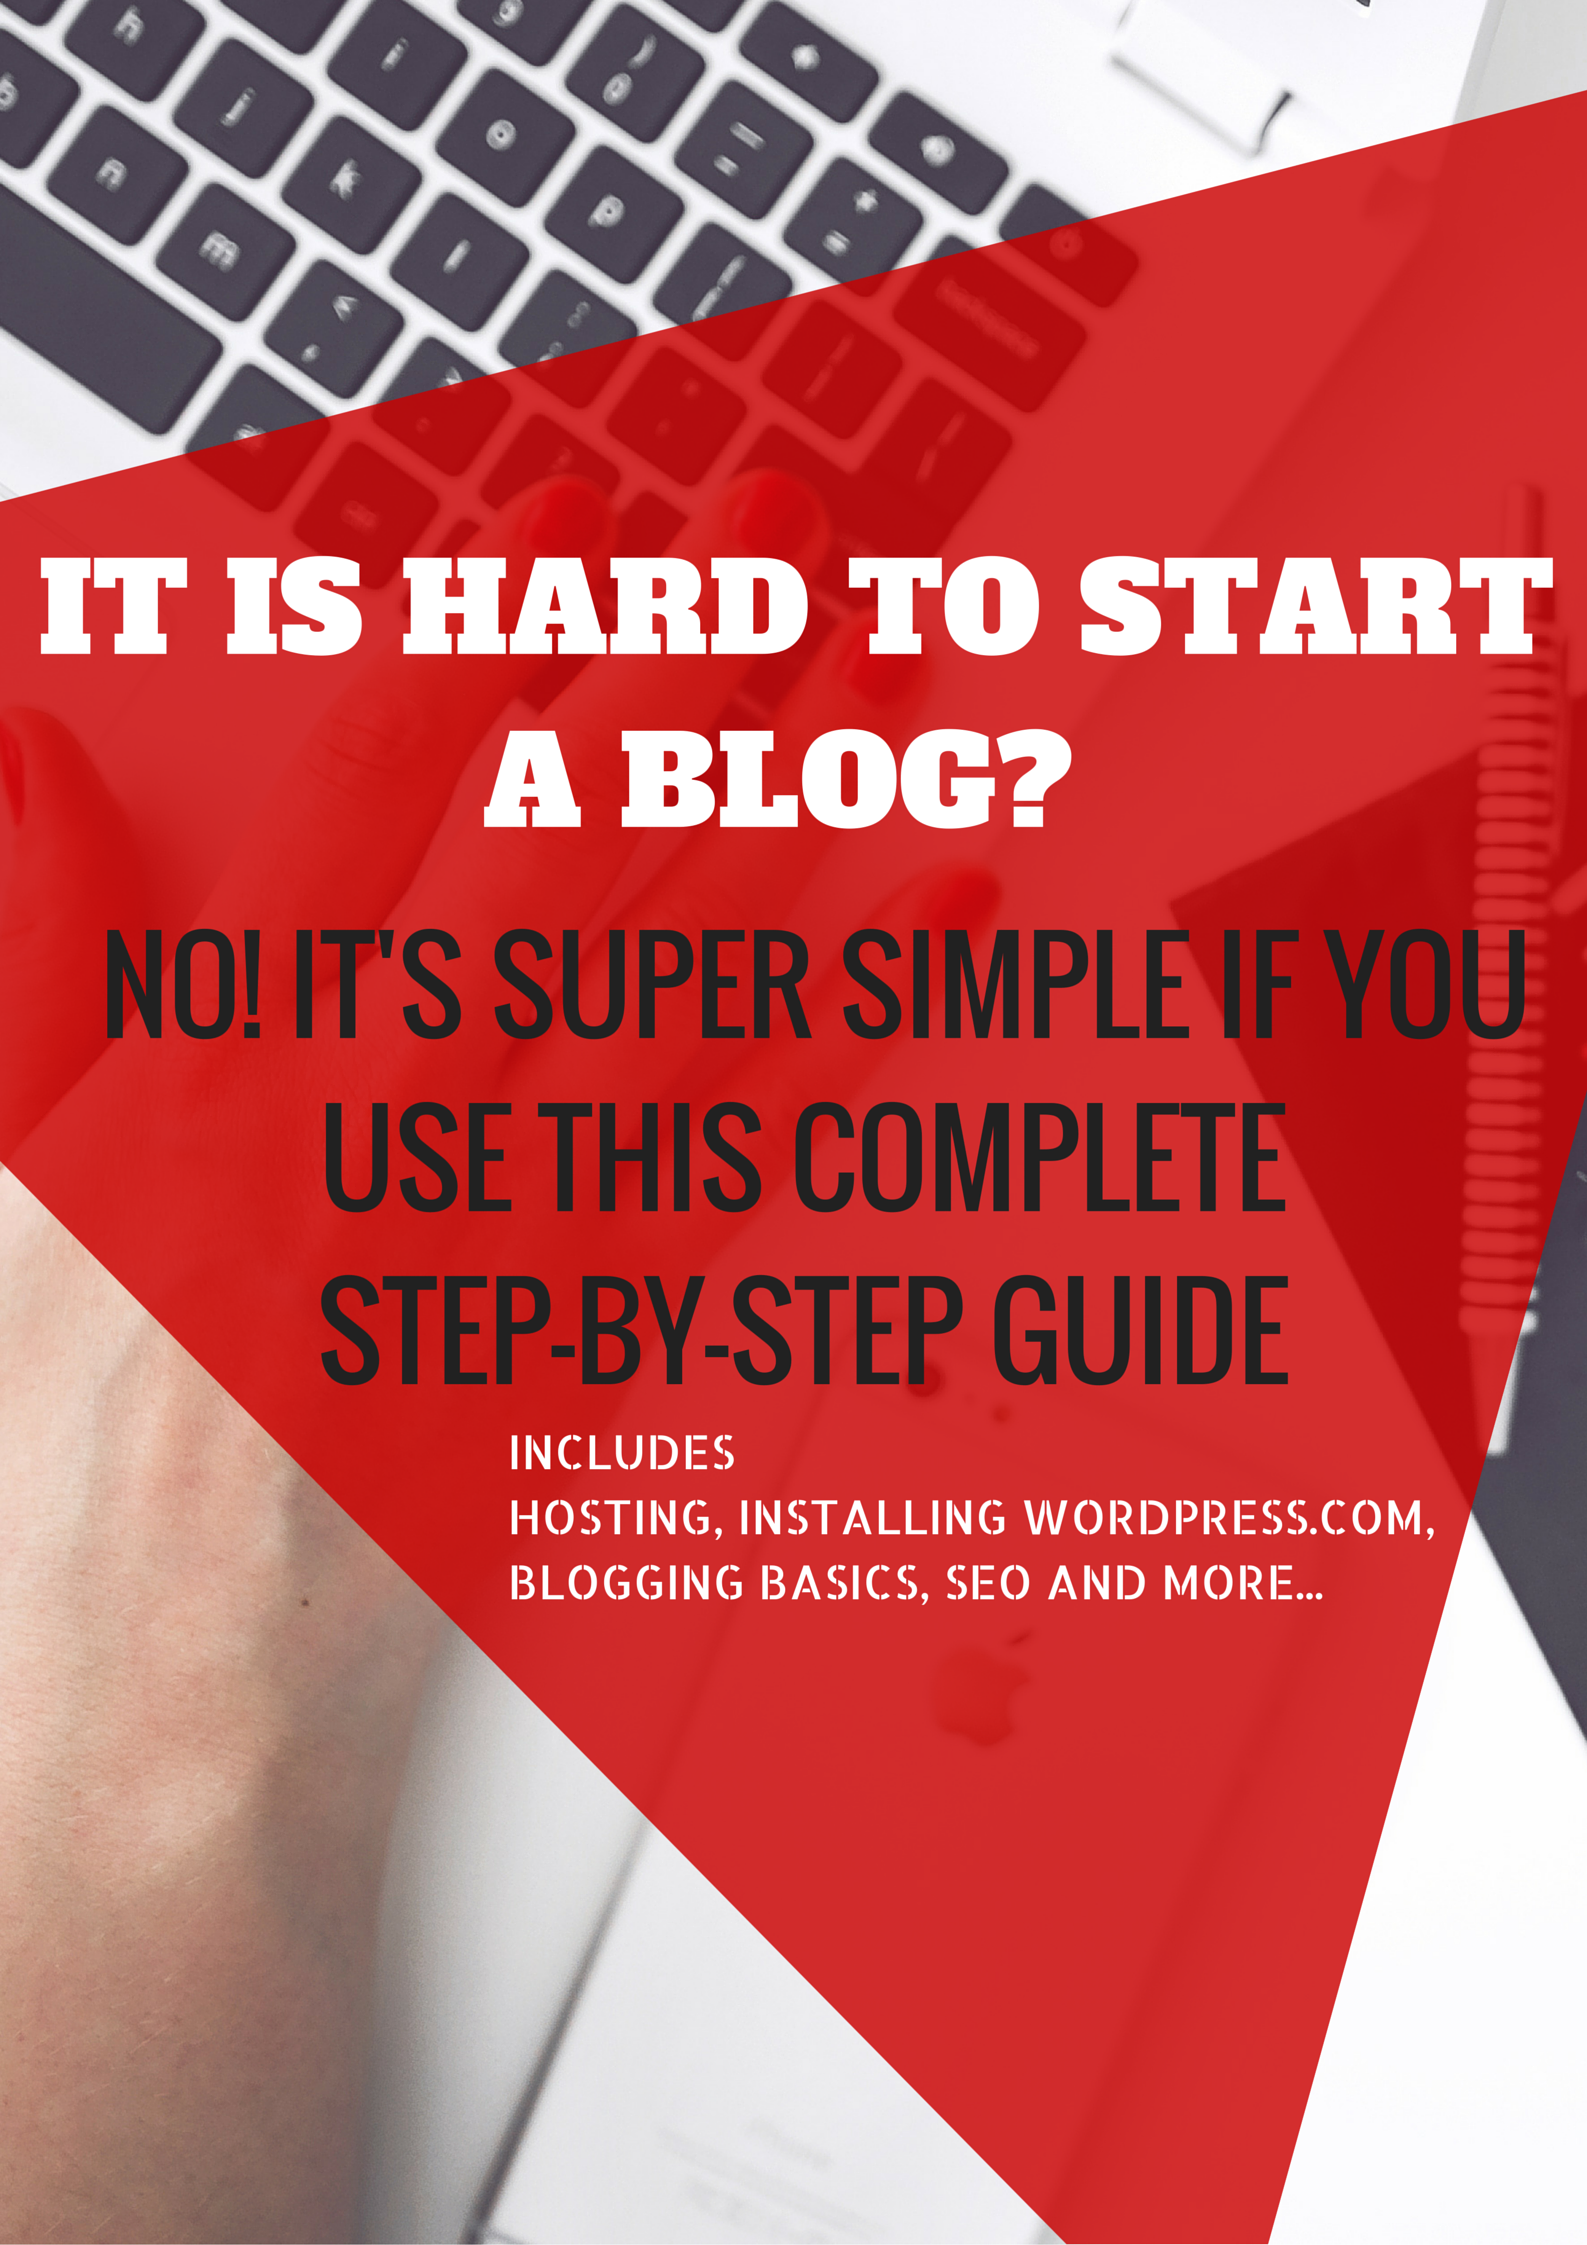 how to start a blog: Complete guide to starting a blog.